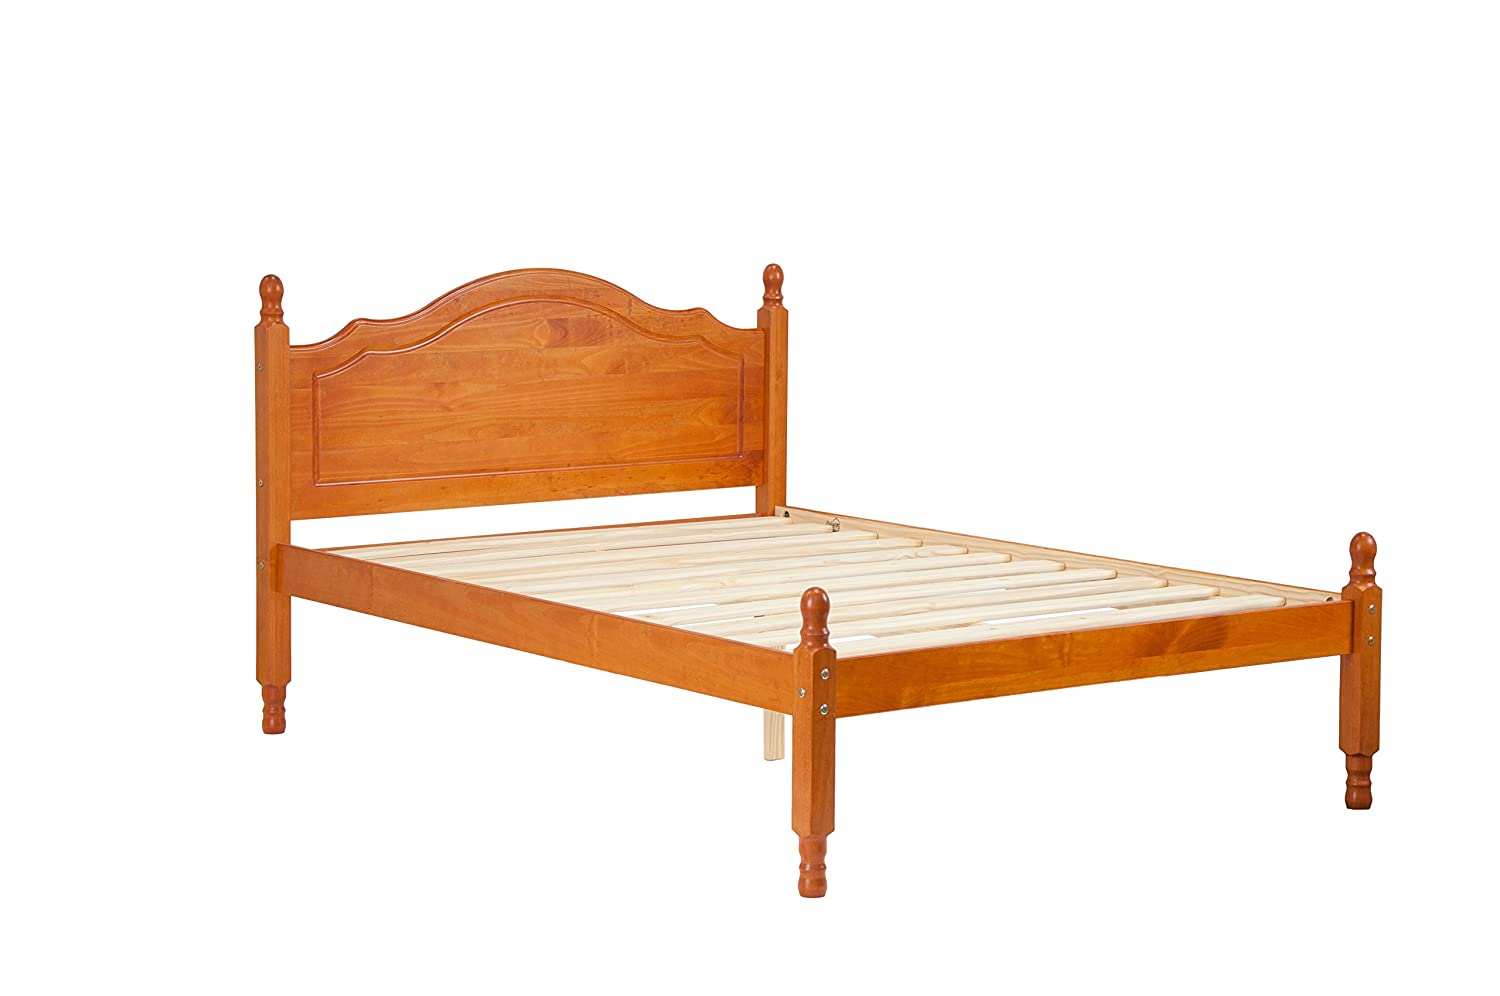 wood antique marvelous comparing with leather homearena bedroom bed by beds wooden